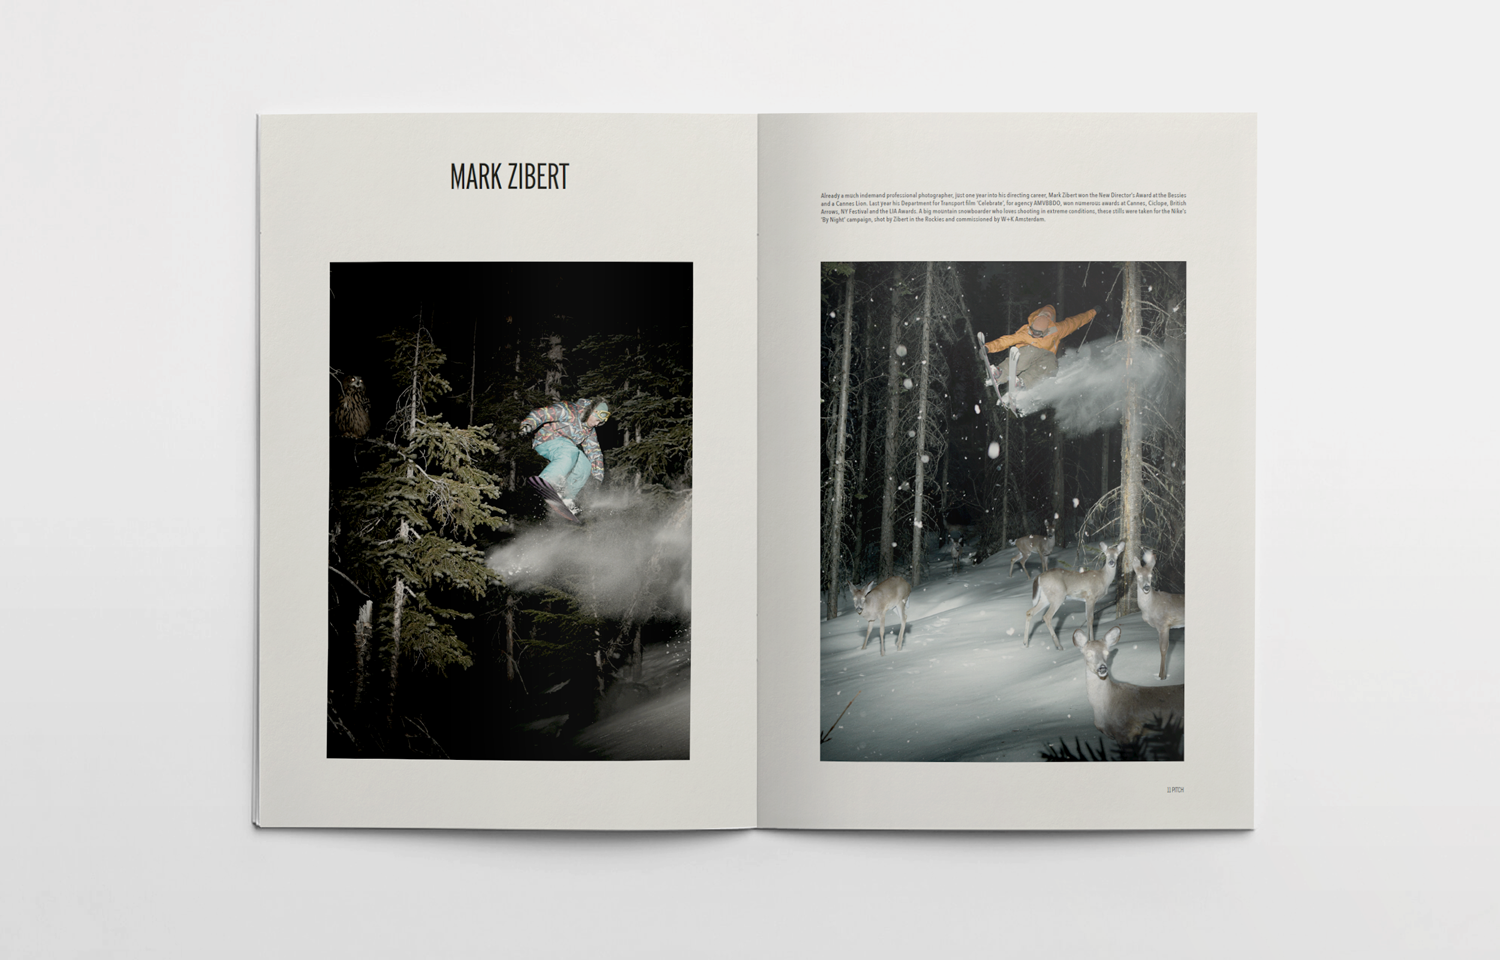 Editorial design featuring images from photographer and film director, Mark Zibert.